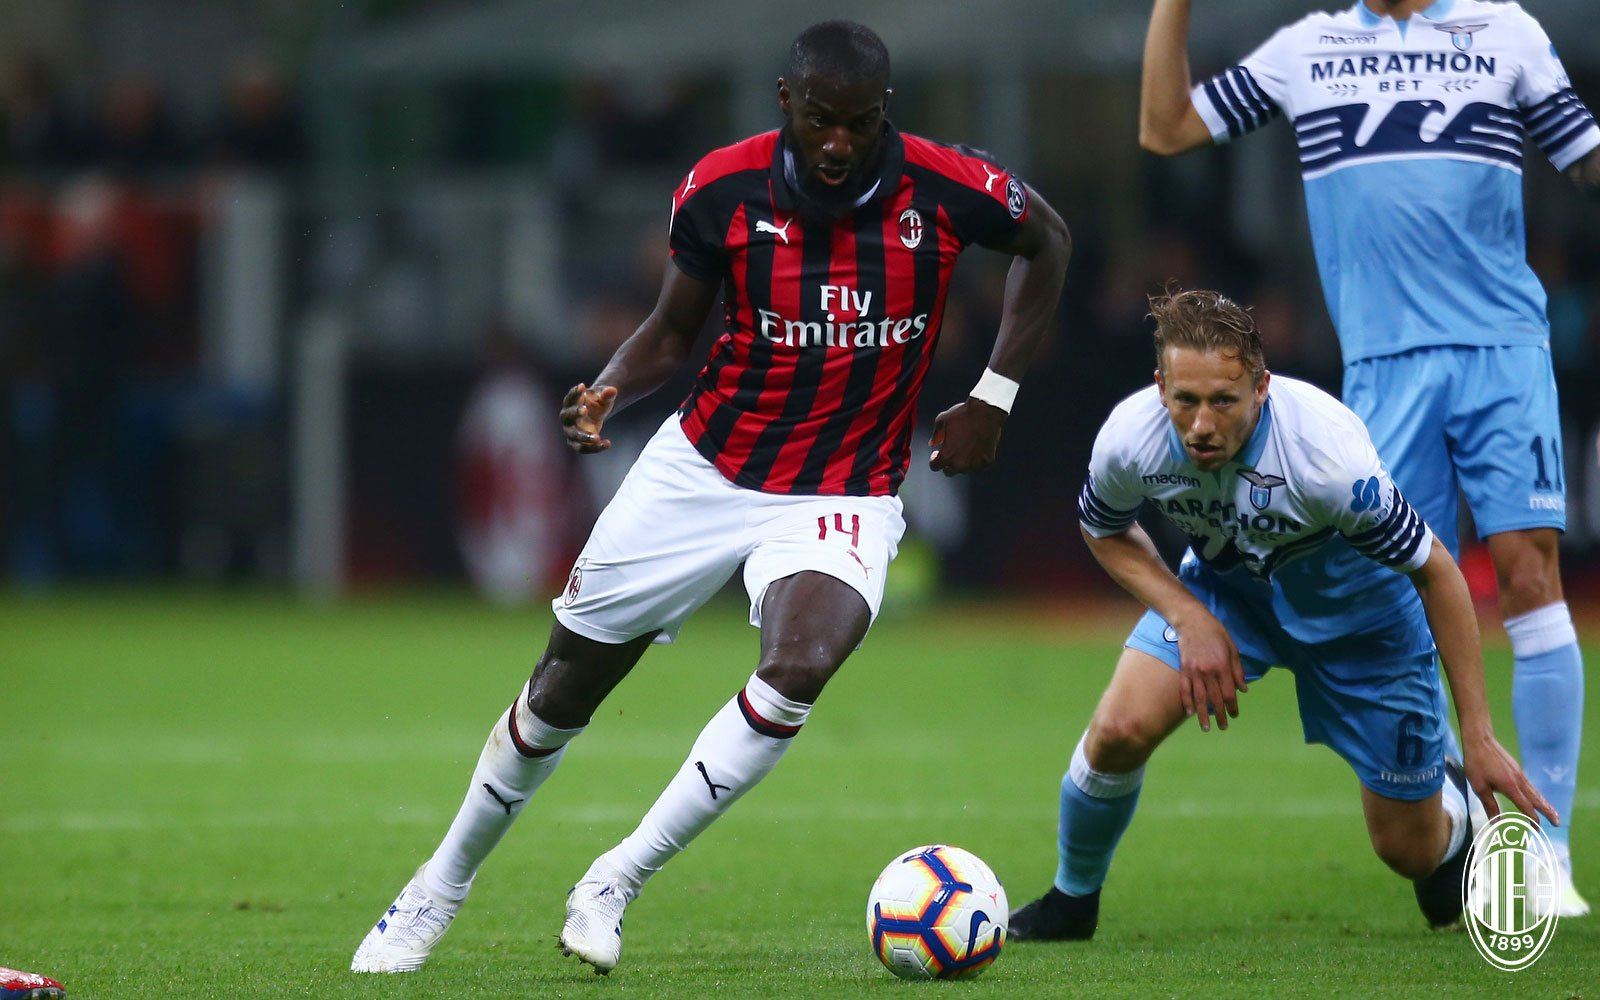 Tiémoué Bakayoko and Lucas Leiva during Milan-Lazio at Stadio San Siro on April 24, 2019. (@acmilan.com)